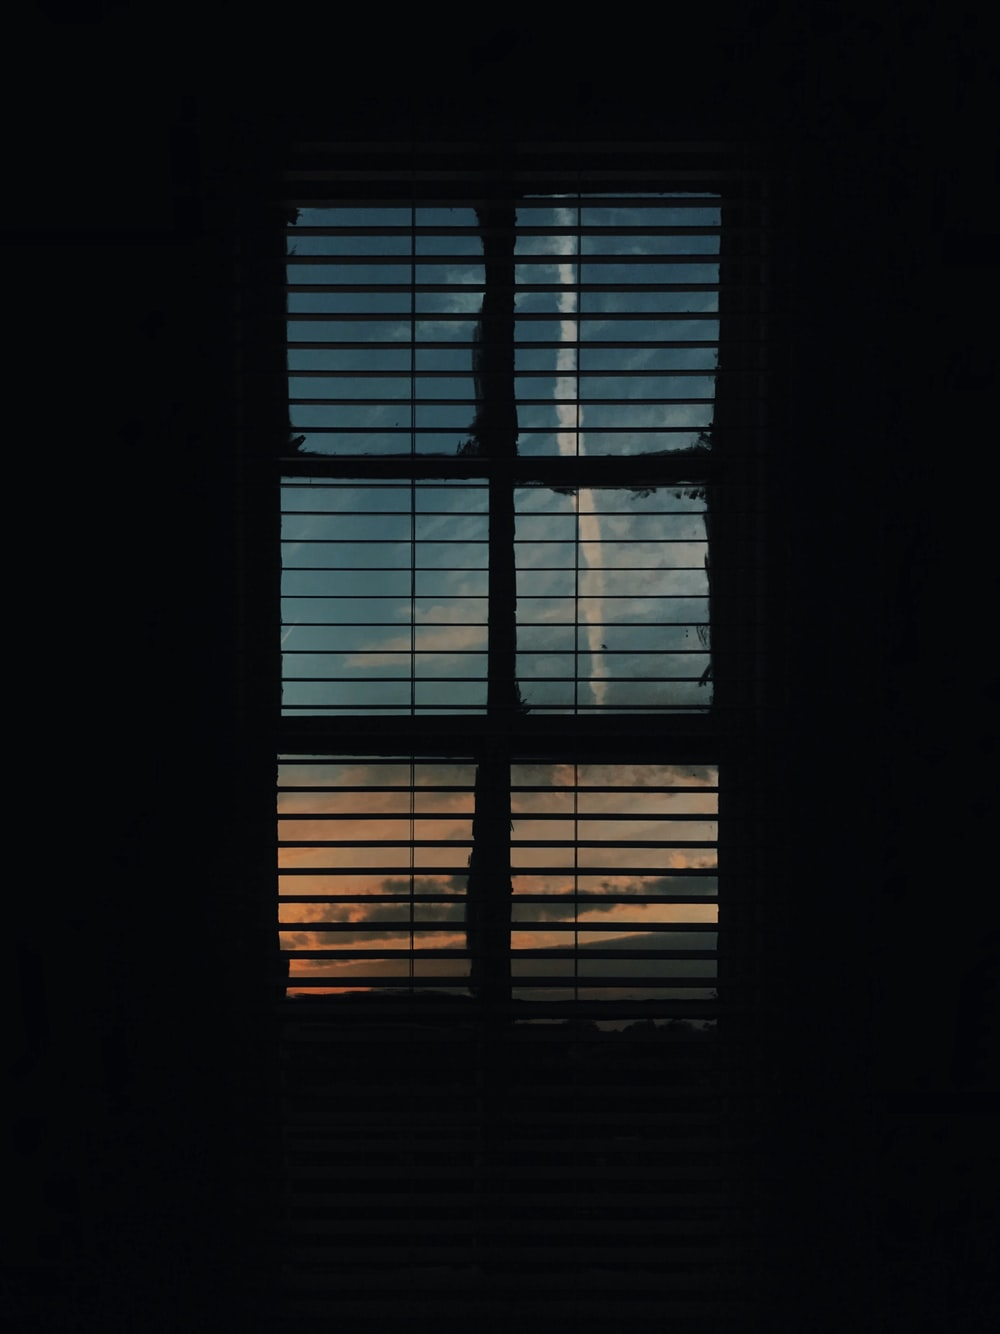 silhouette of window blinds